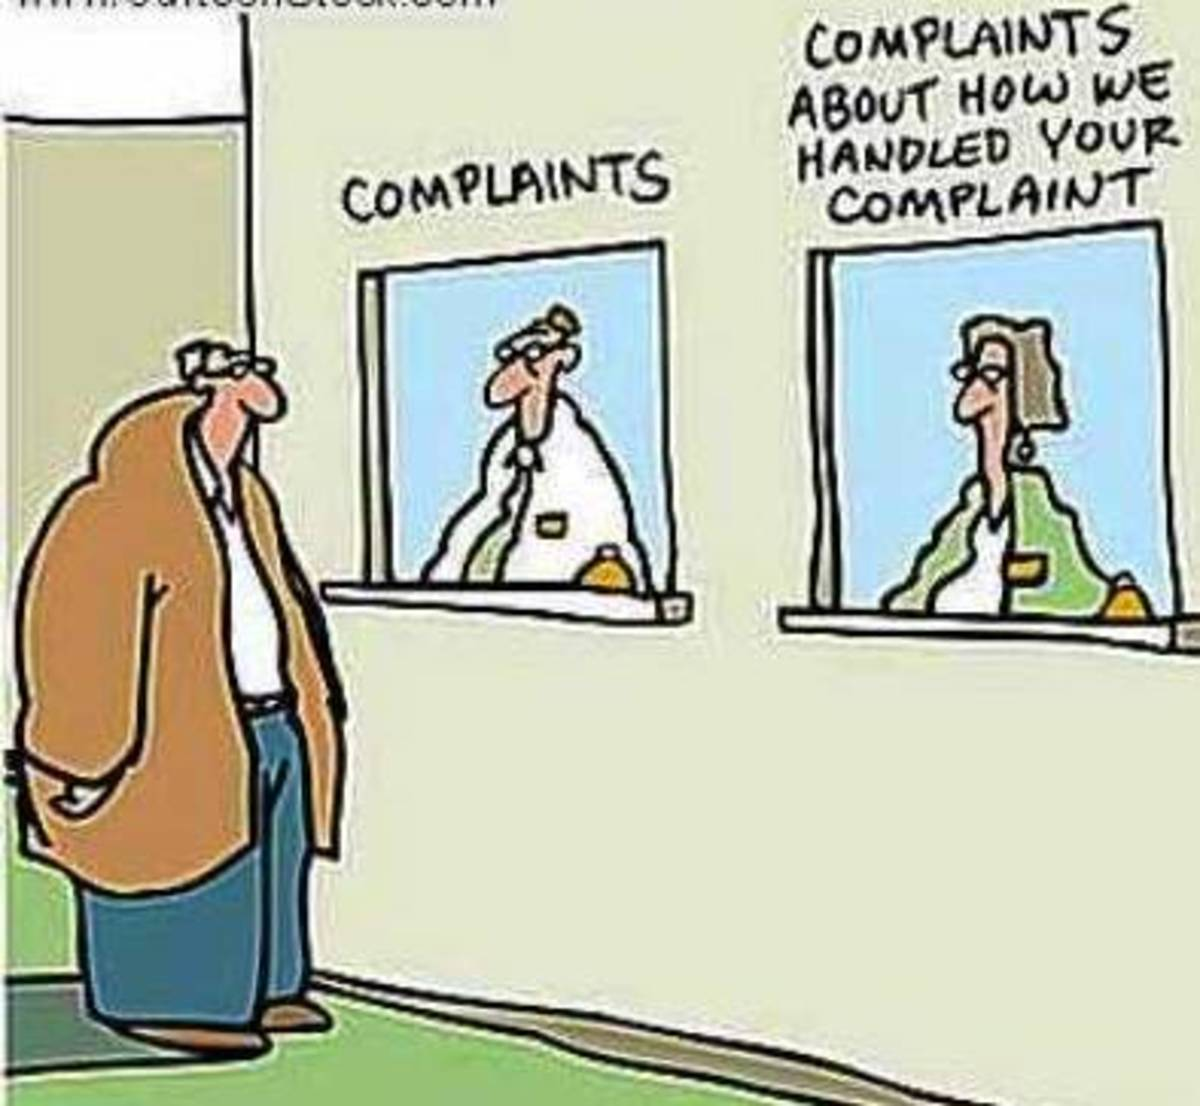 Are you receiving bad customer service or are you just a bad customer?